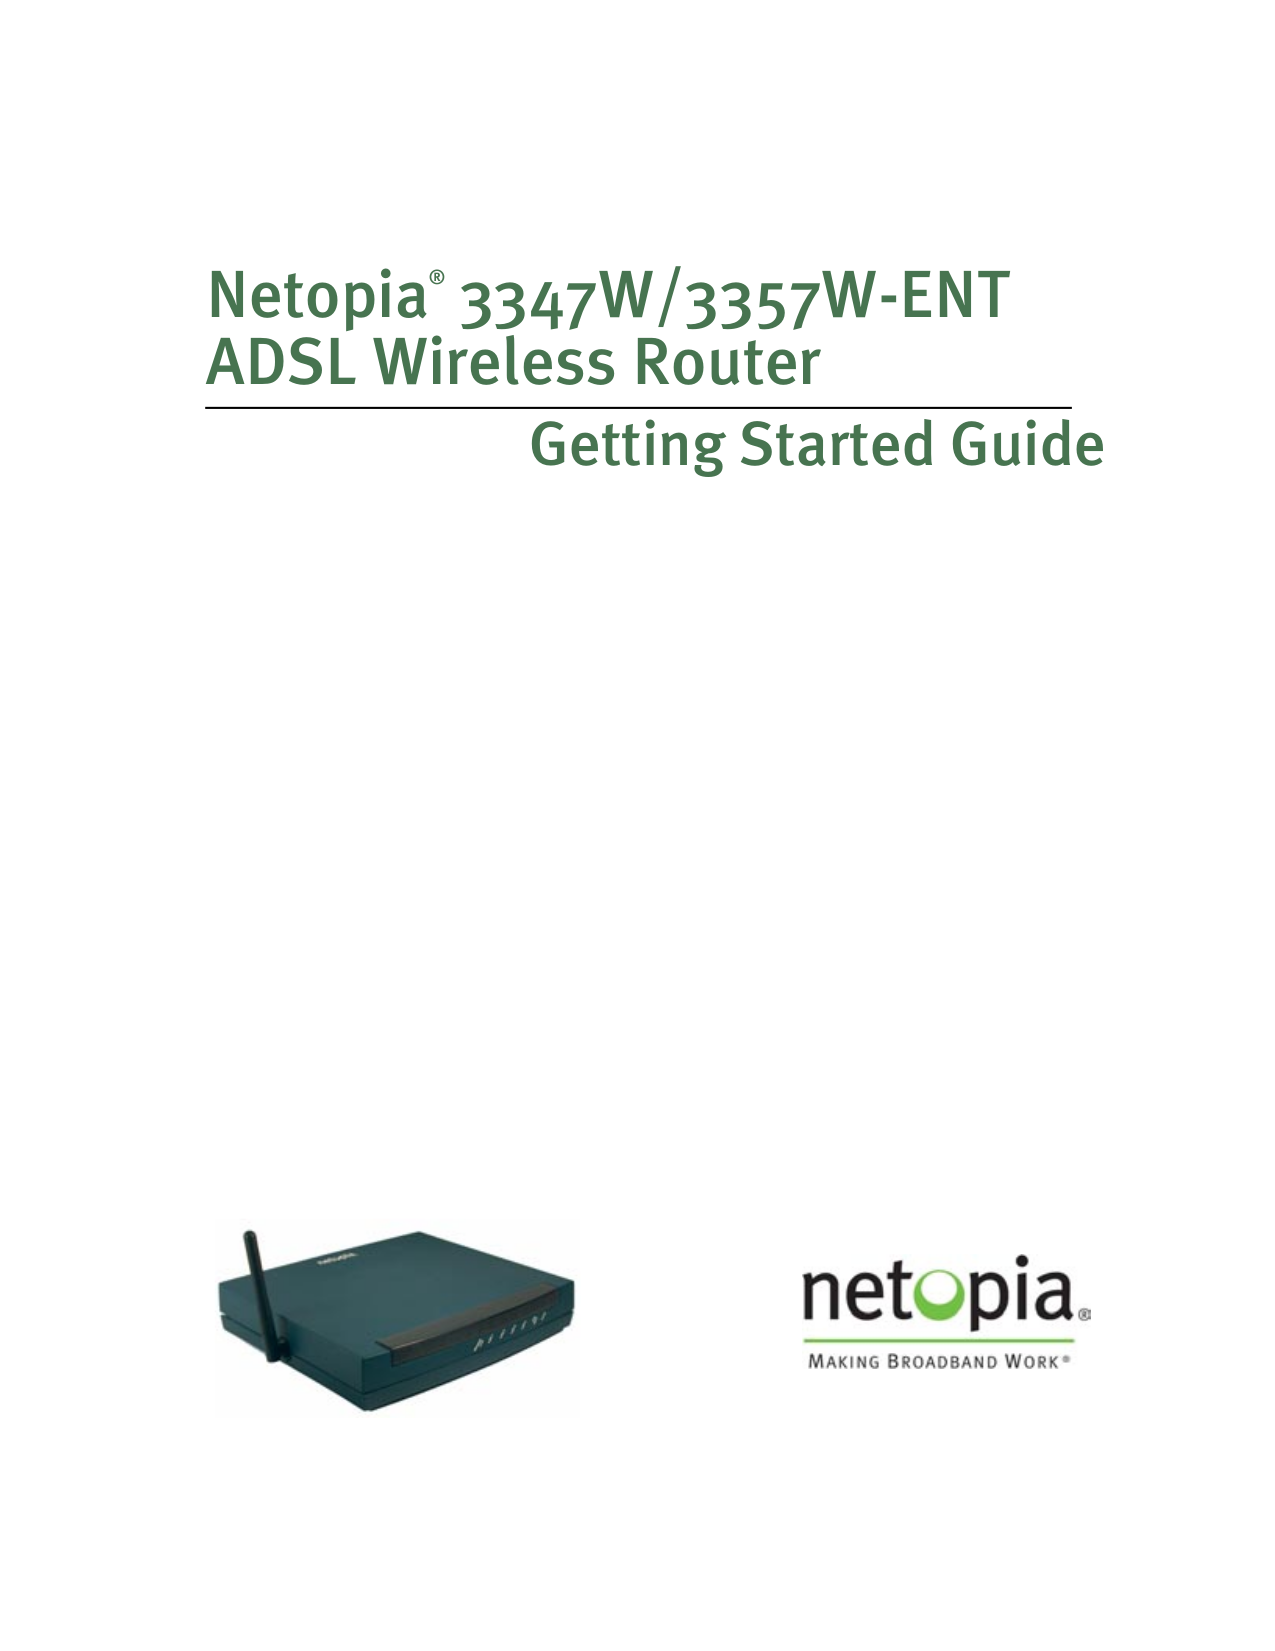 pdf for Netopia Wireless Router 3347W-ENT manual